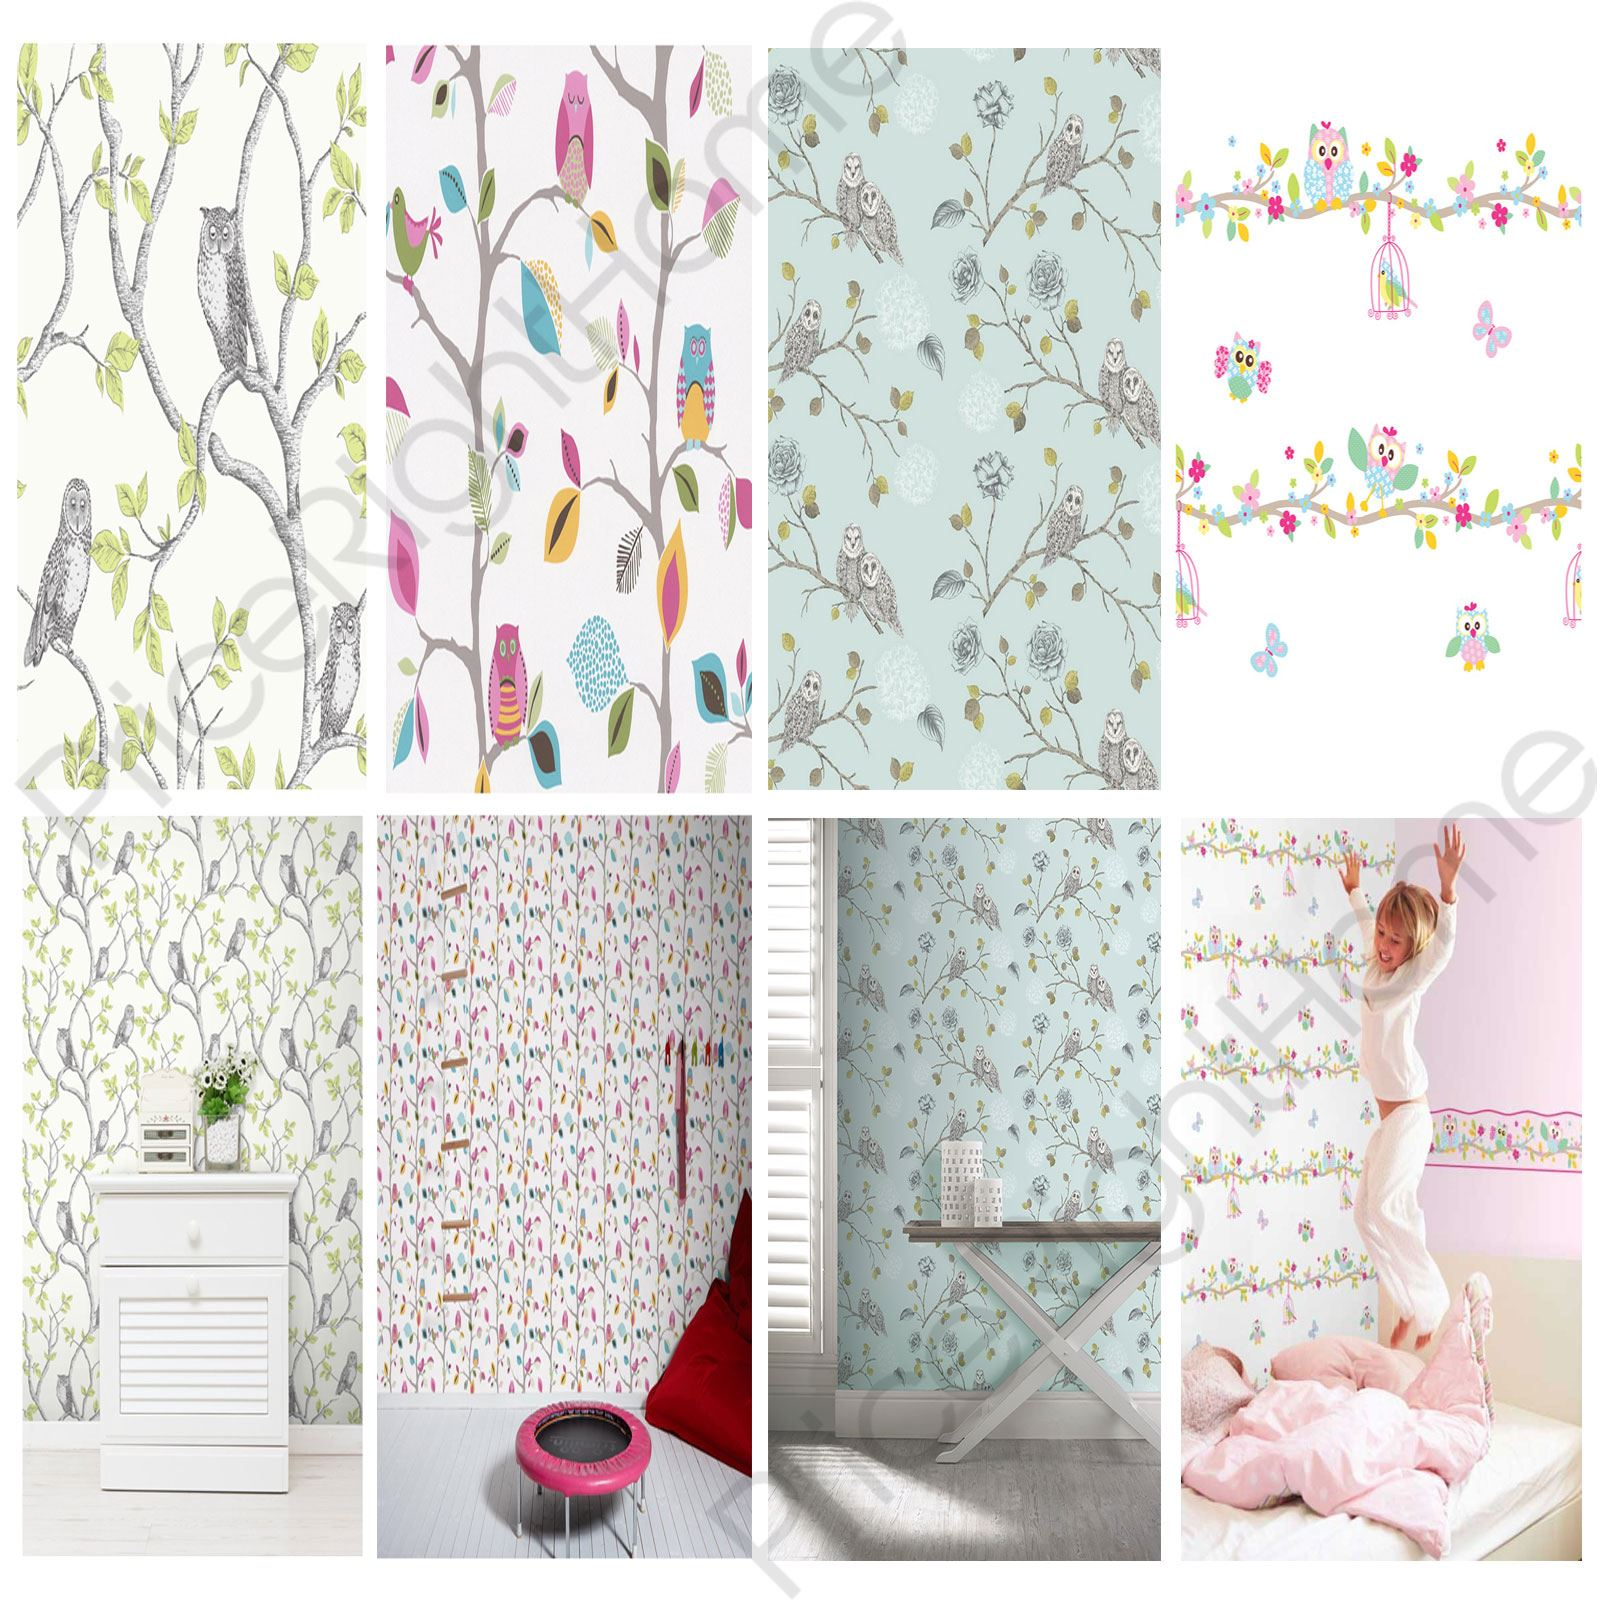 Details about owls wallpaper choose from 6 designs new wall decor feature wall free p p